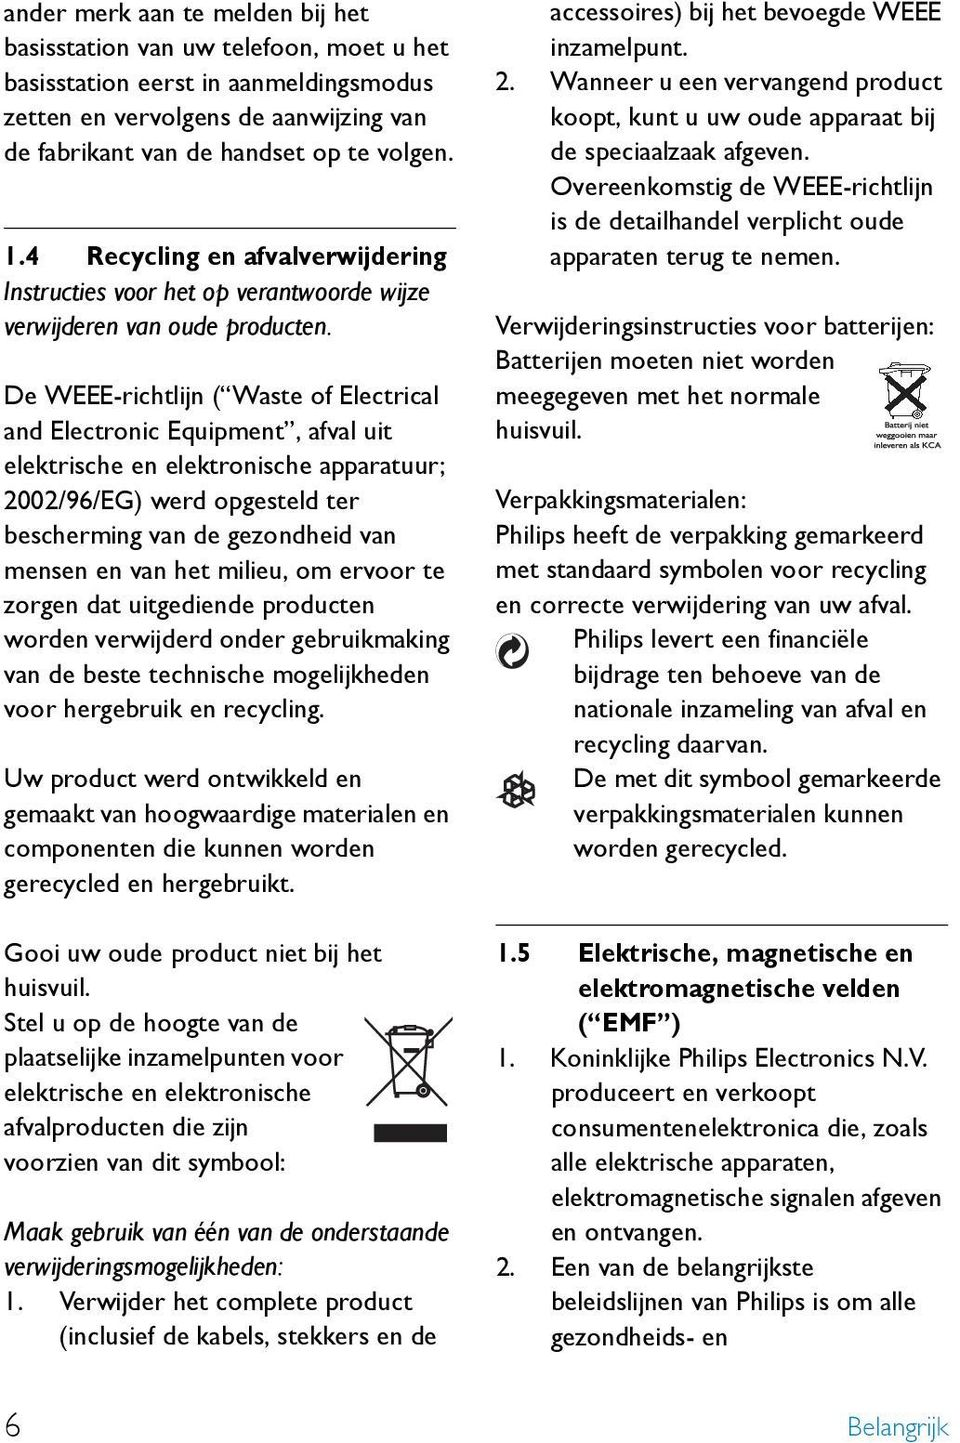 De WEEE-richtlijn ( Waste of Electrical and Electronic Equipment, afval uit elektrische en elektronische apparatuur; 2002/96/EG) werd opgesteld ter bescherming van de gezondheid van mensen en van het